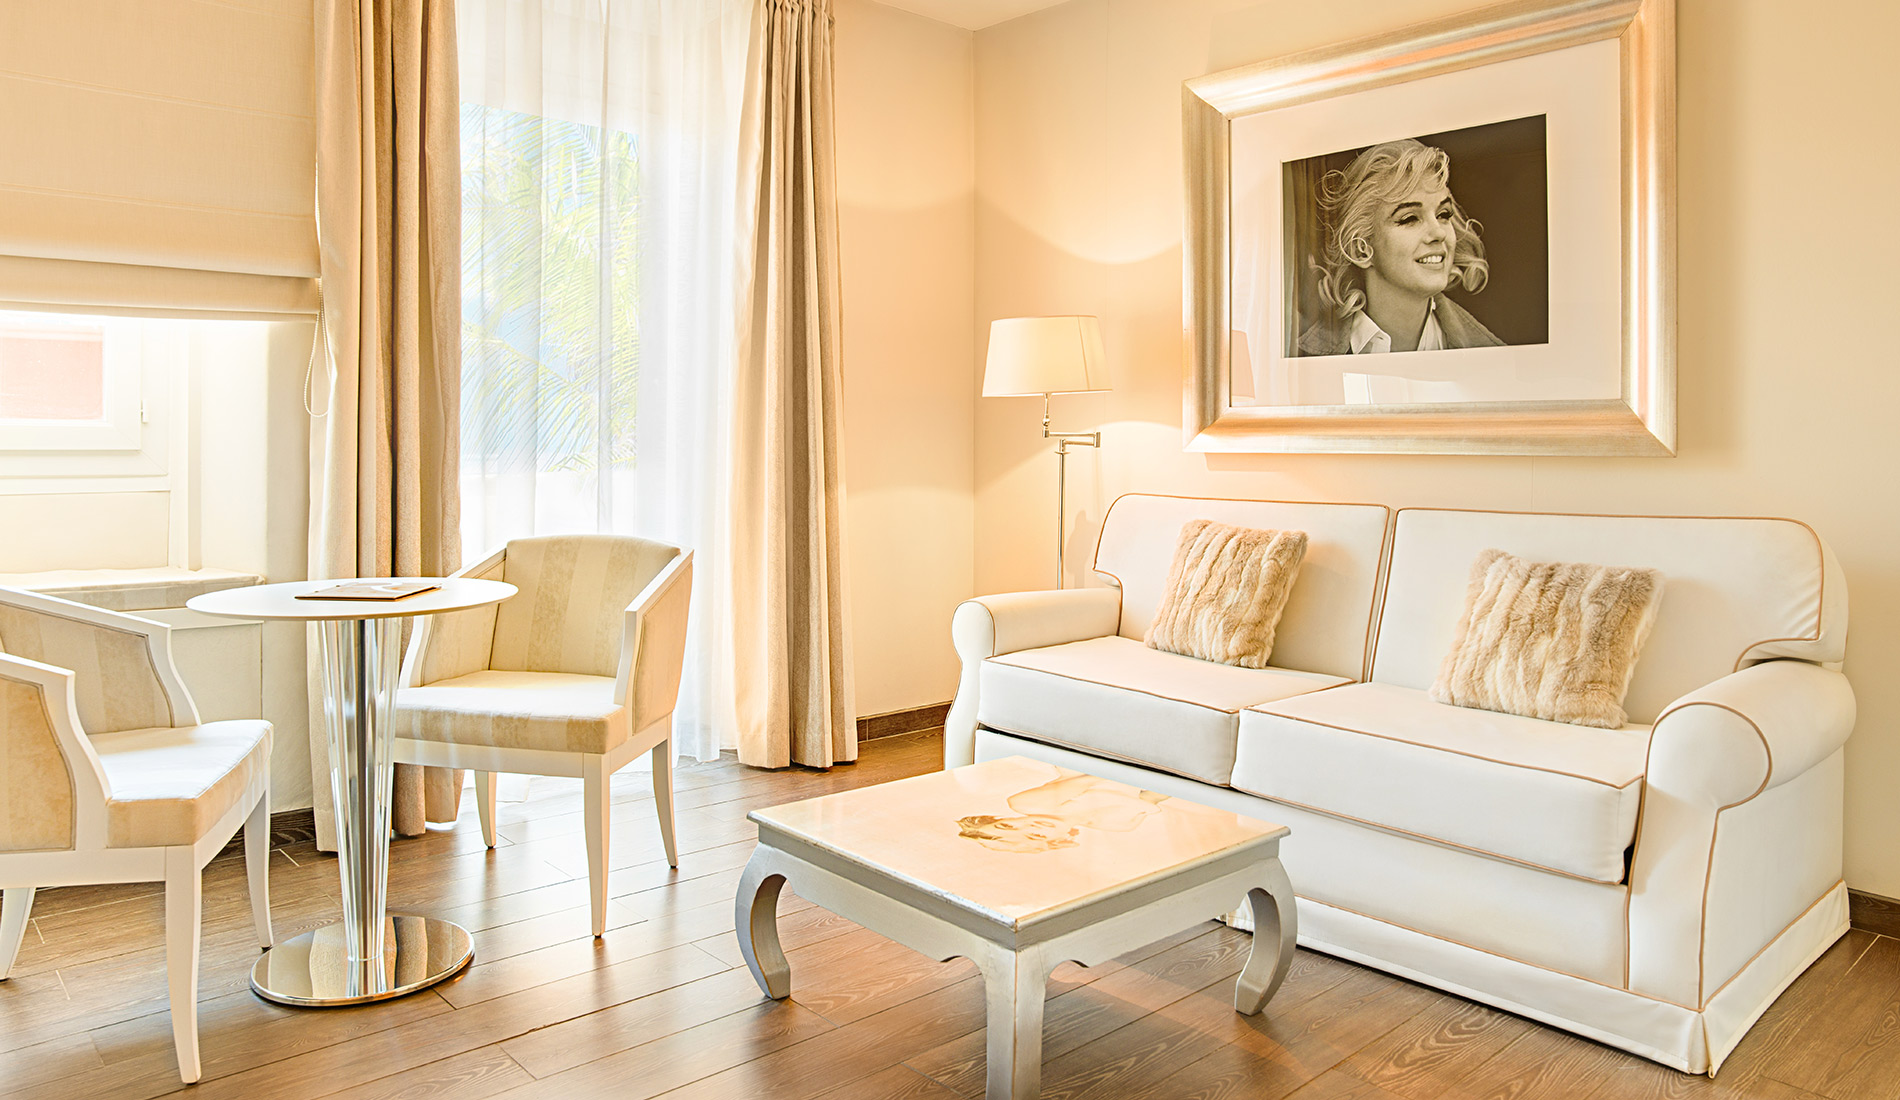 Charming propertyl Hotel Renoir Cannes France 4 star suite with a living room